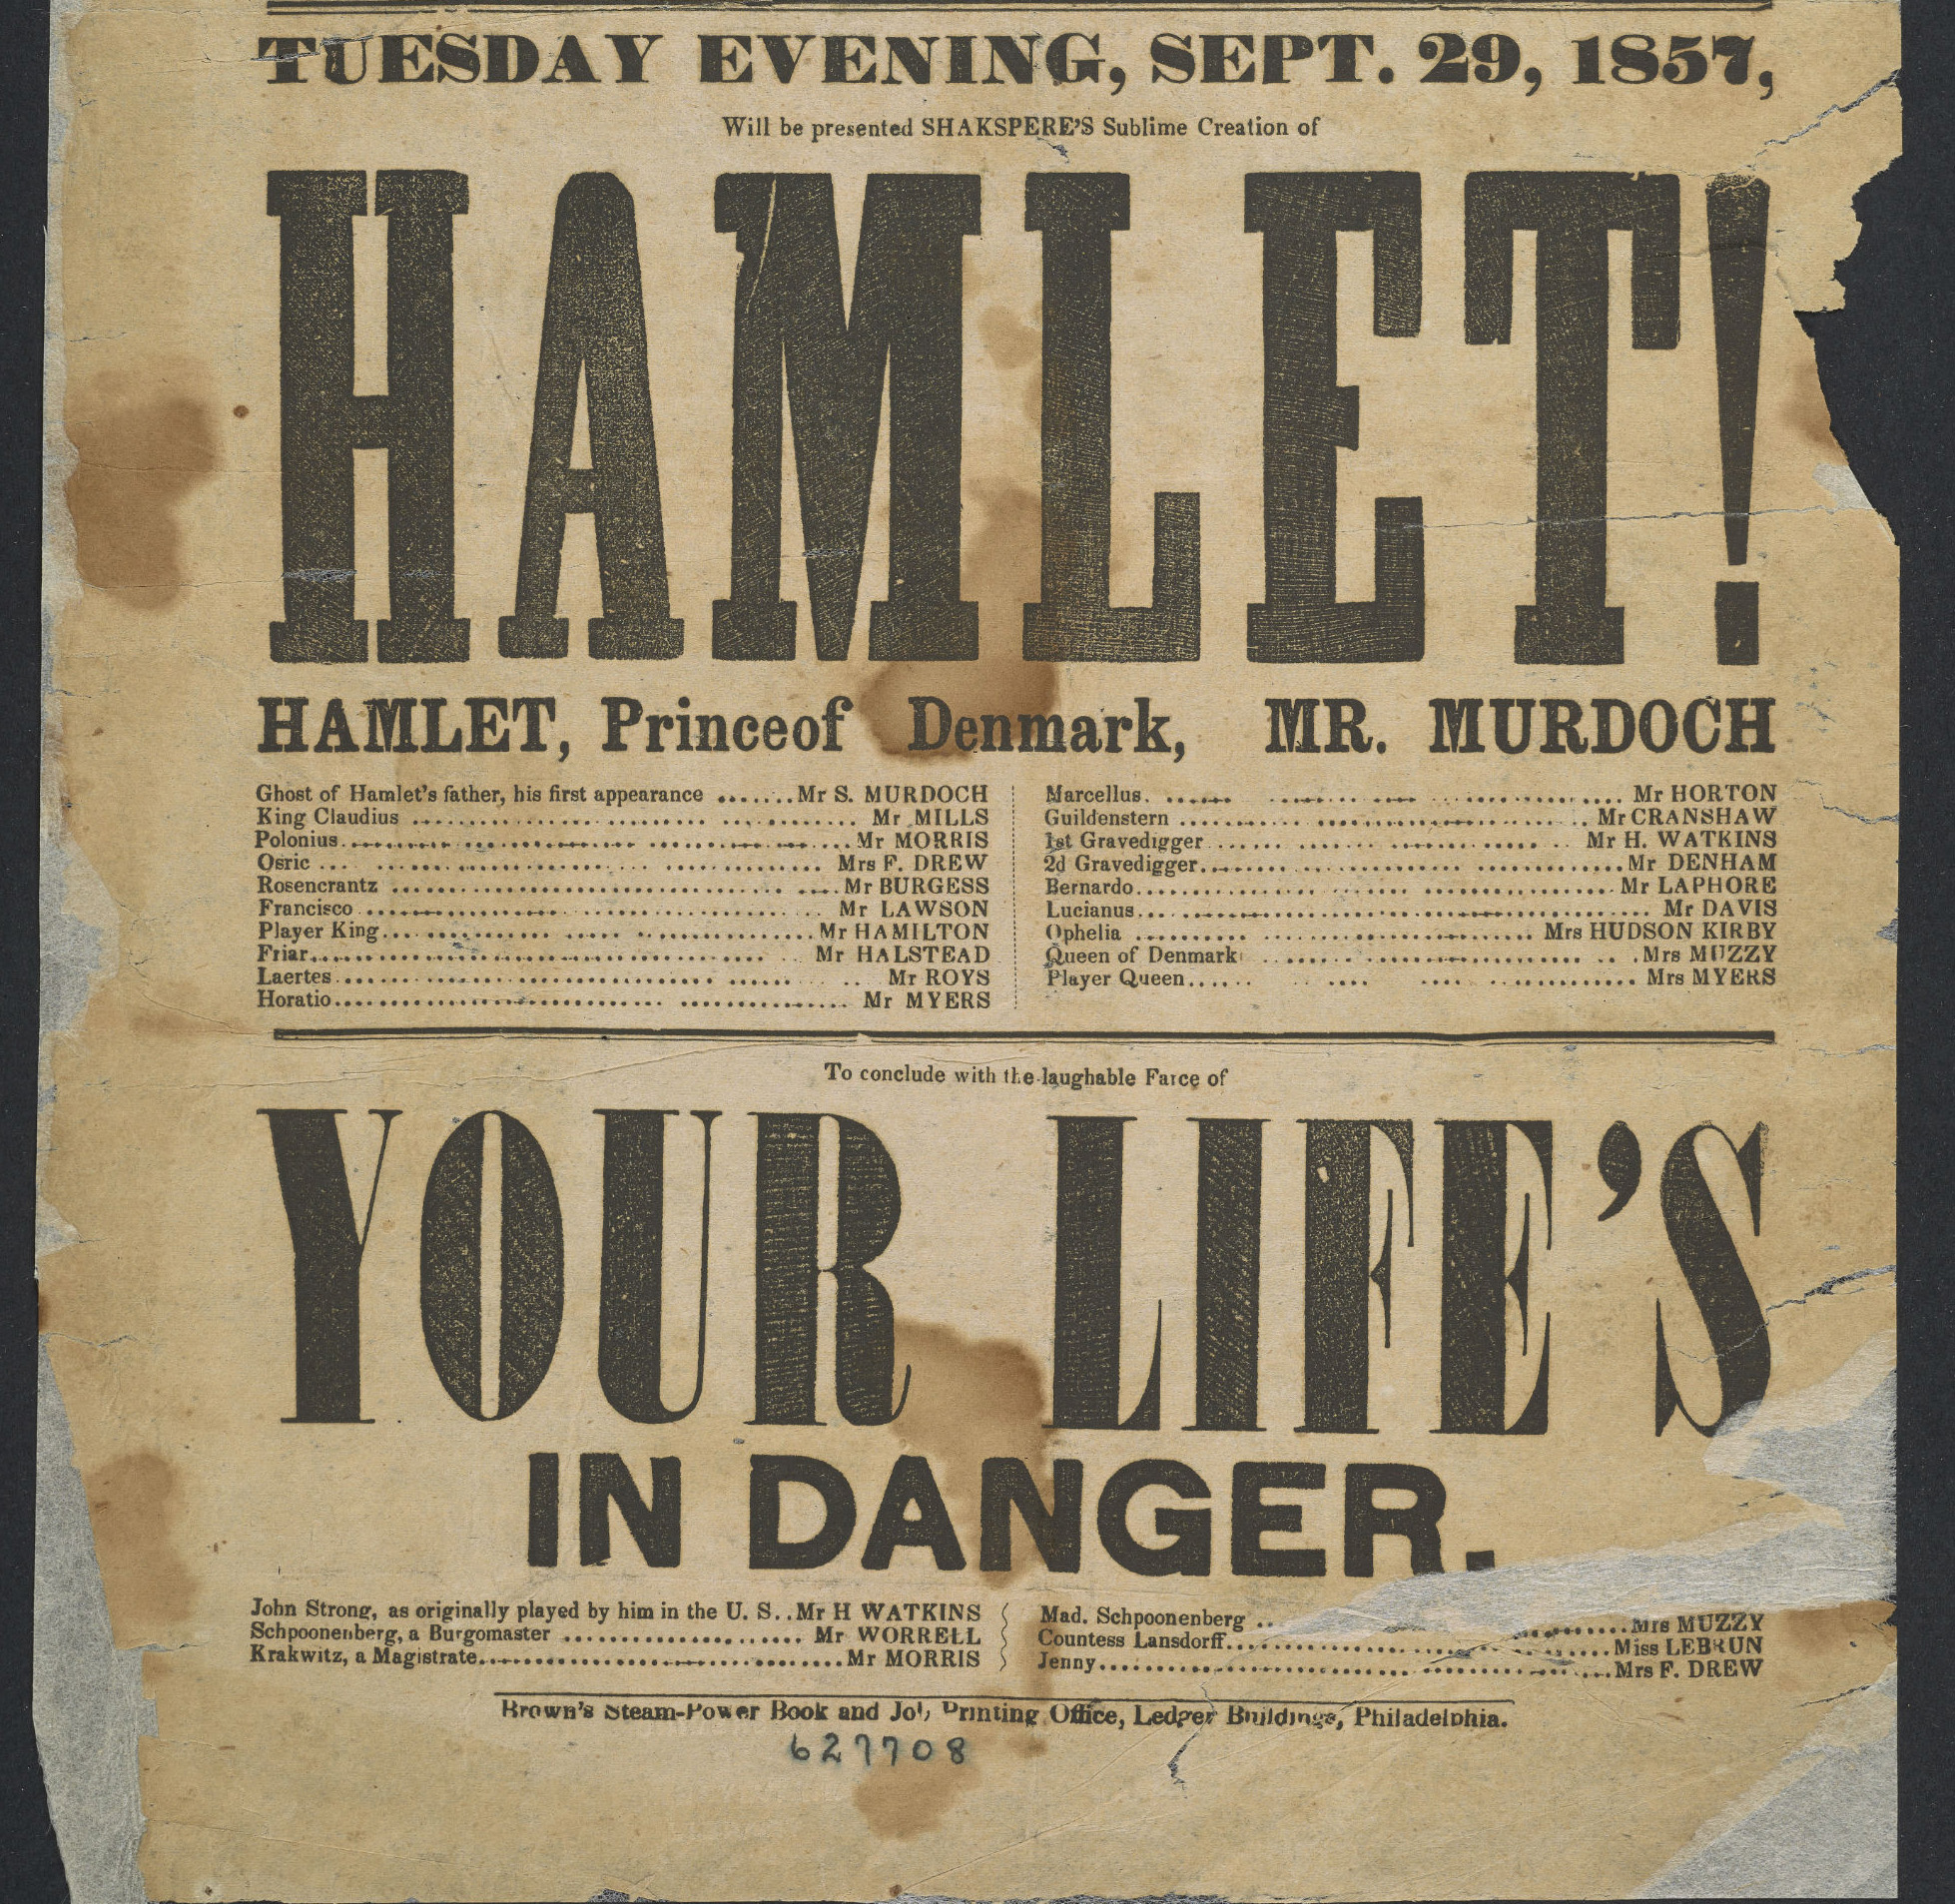 Detail of 1857 playbill from the National Theatre performance of Hamlet